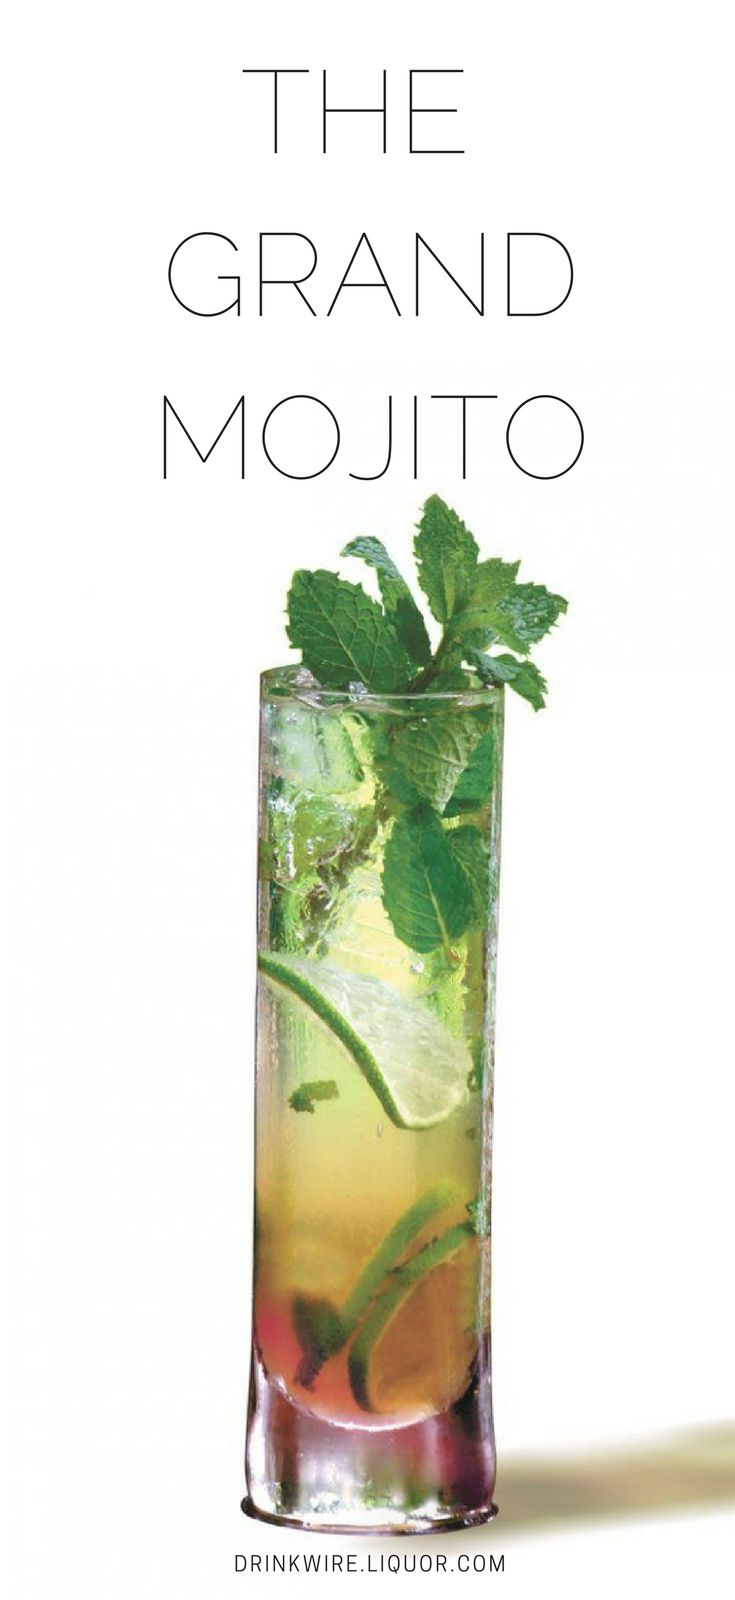 Traditionally made with light rum, this cocktail twists the typical Mojito by using dark rum that adds a layer of color to the glass and a slightly new taste. This will be the ultimate cocktail for poolside sipping come spring and now you can be the superstar bartender mixing them up.